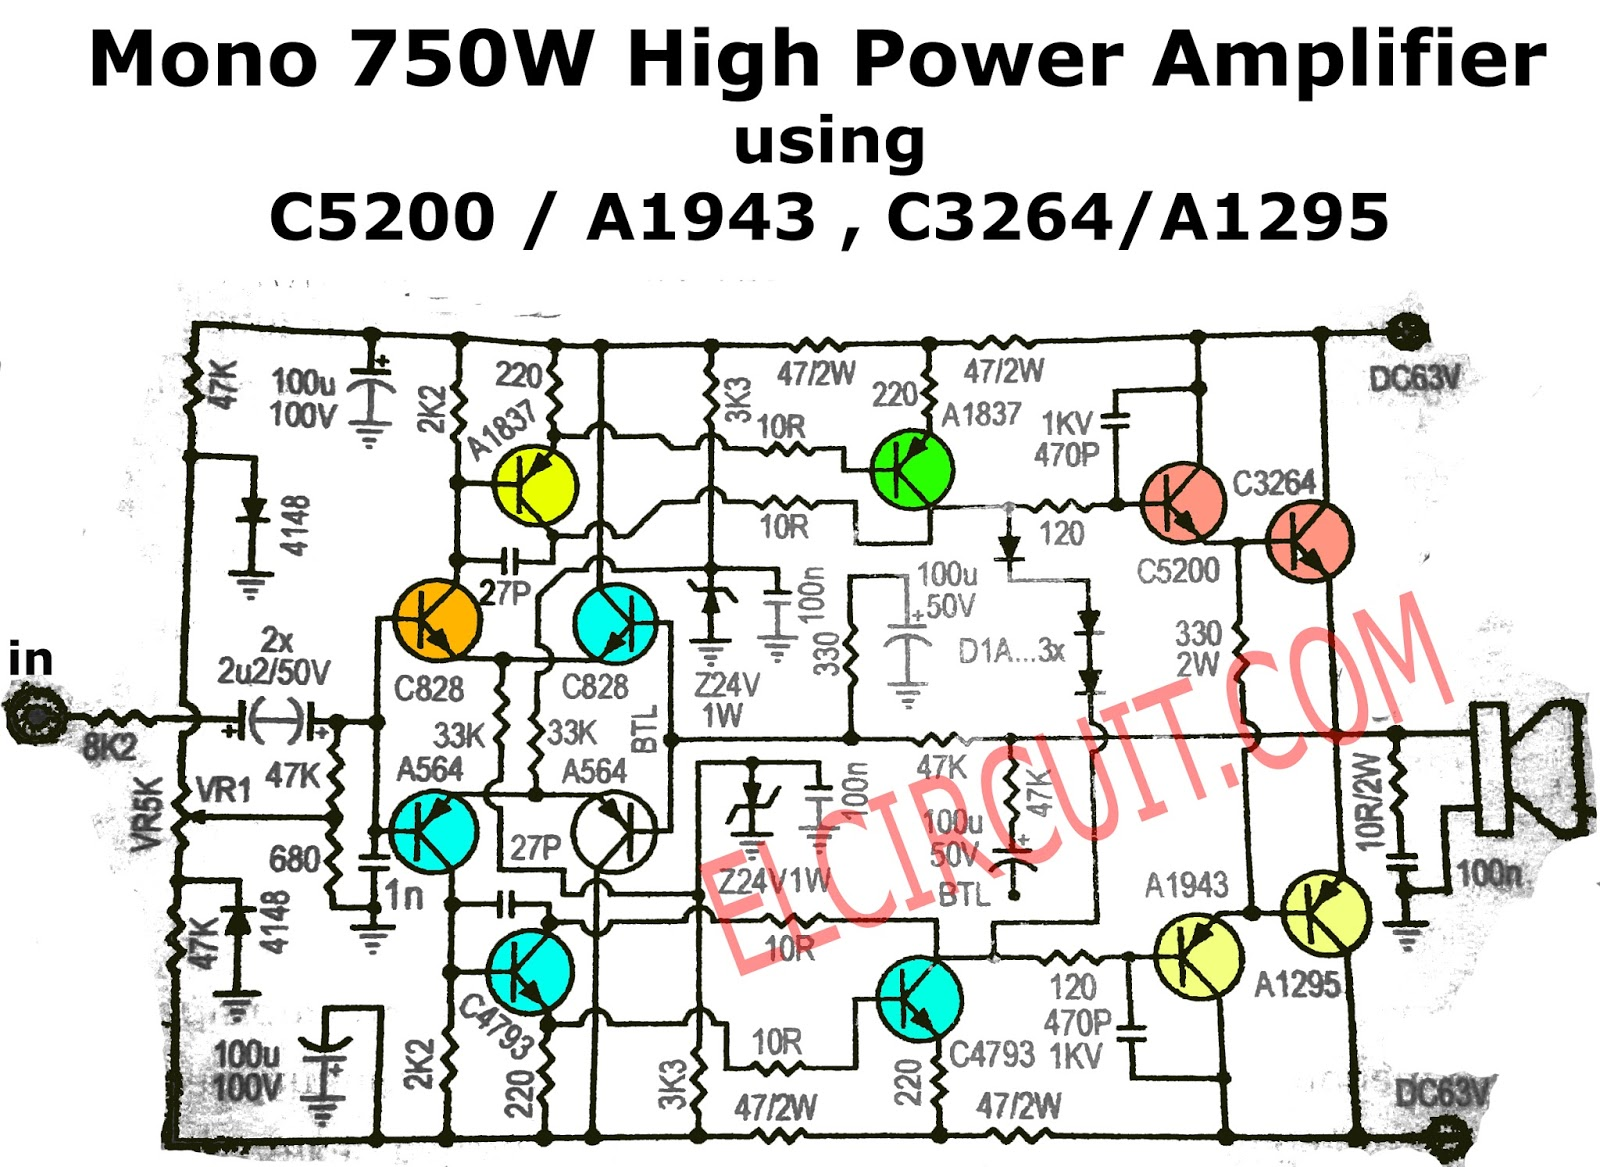 750w mono power amplifier schematic and pcb electronic circuit [ 1600 x 1167 Pixel ]